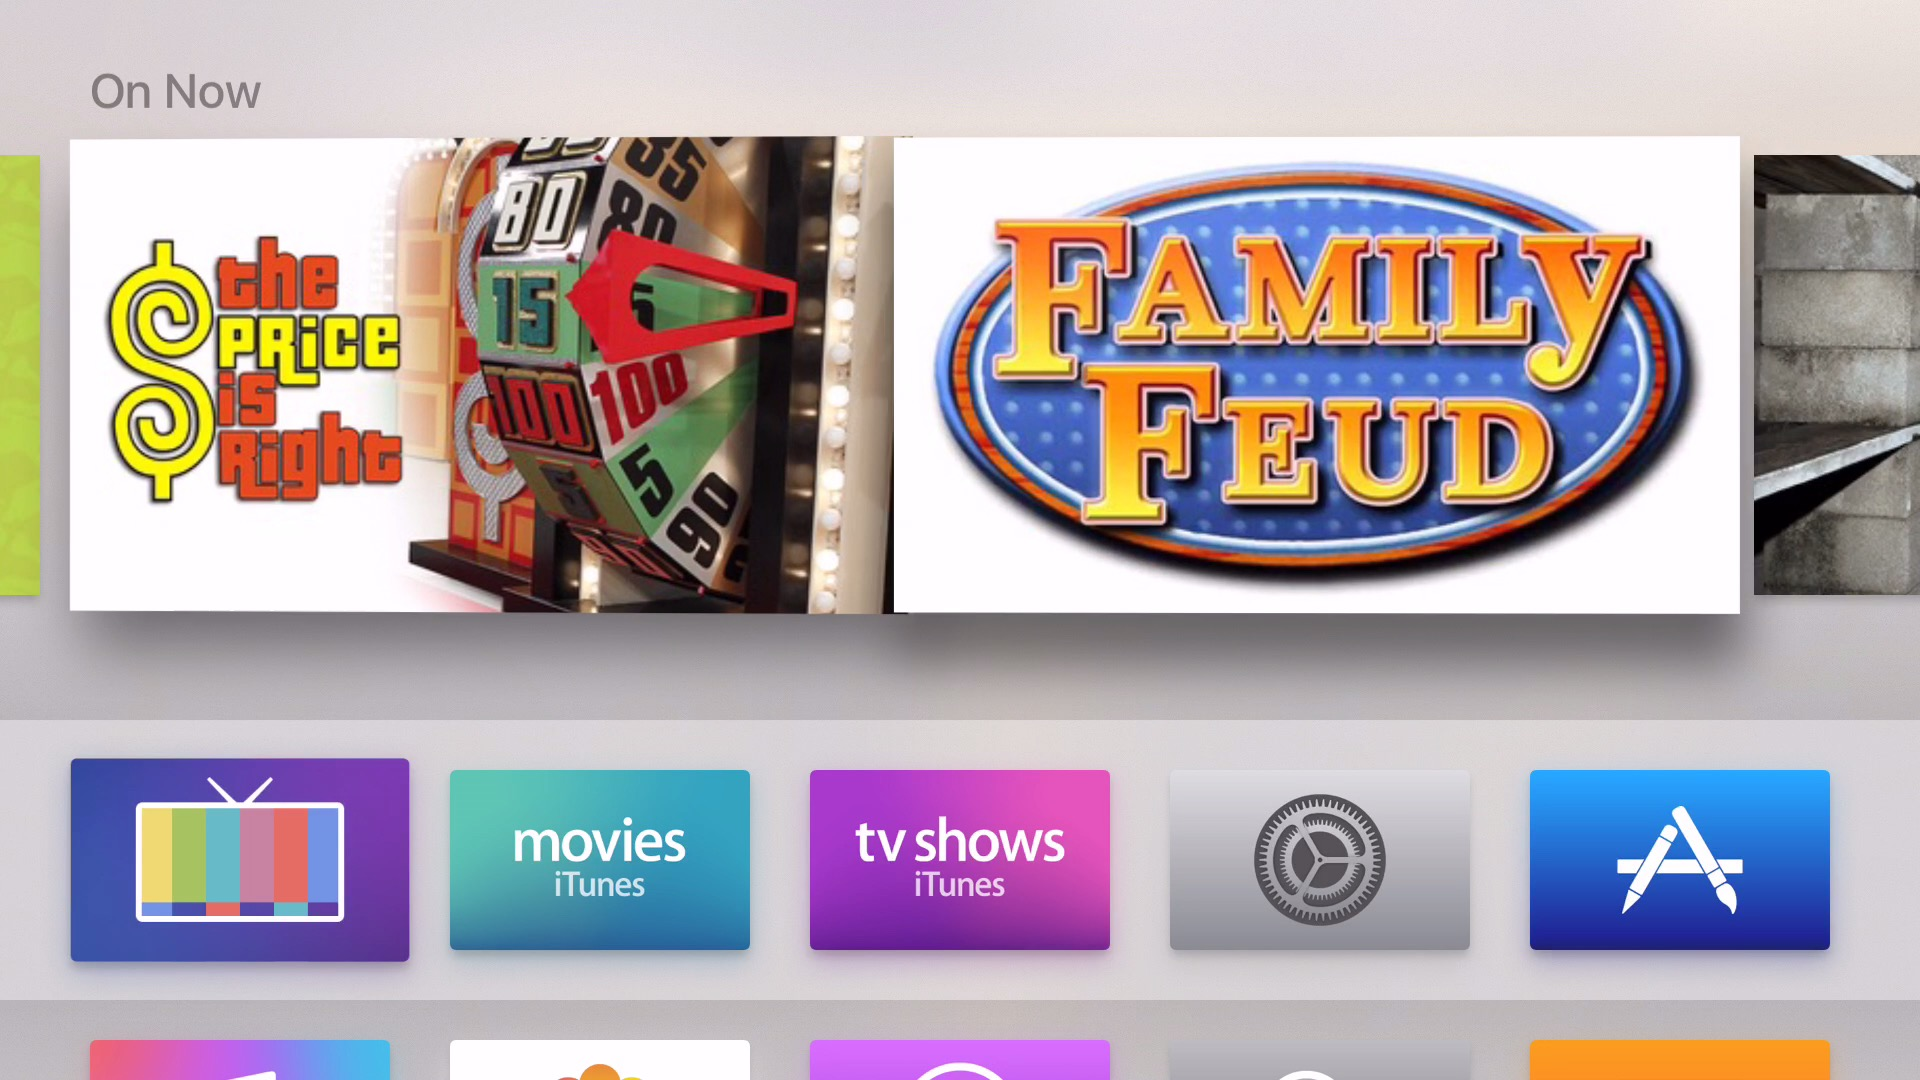 Channels Apple TV